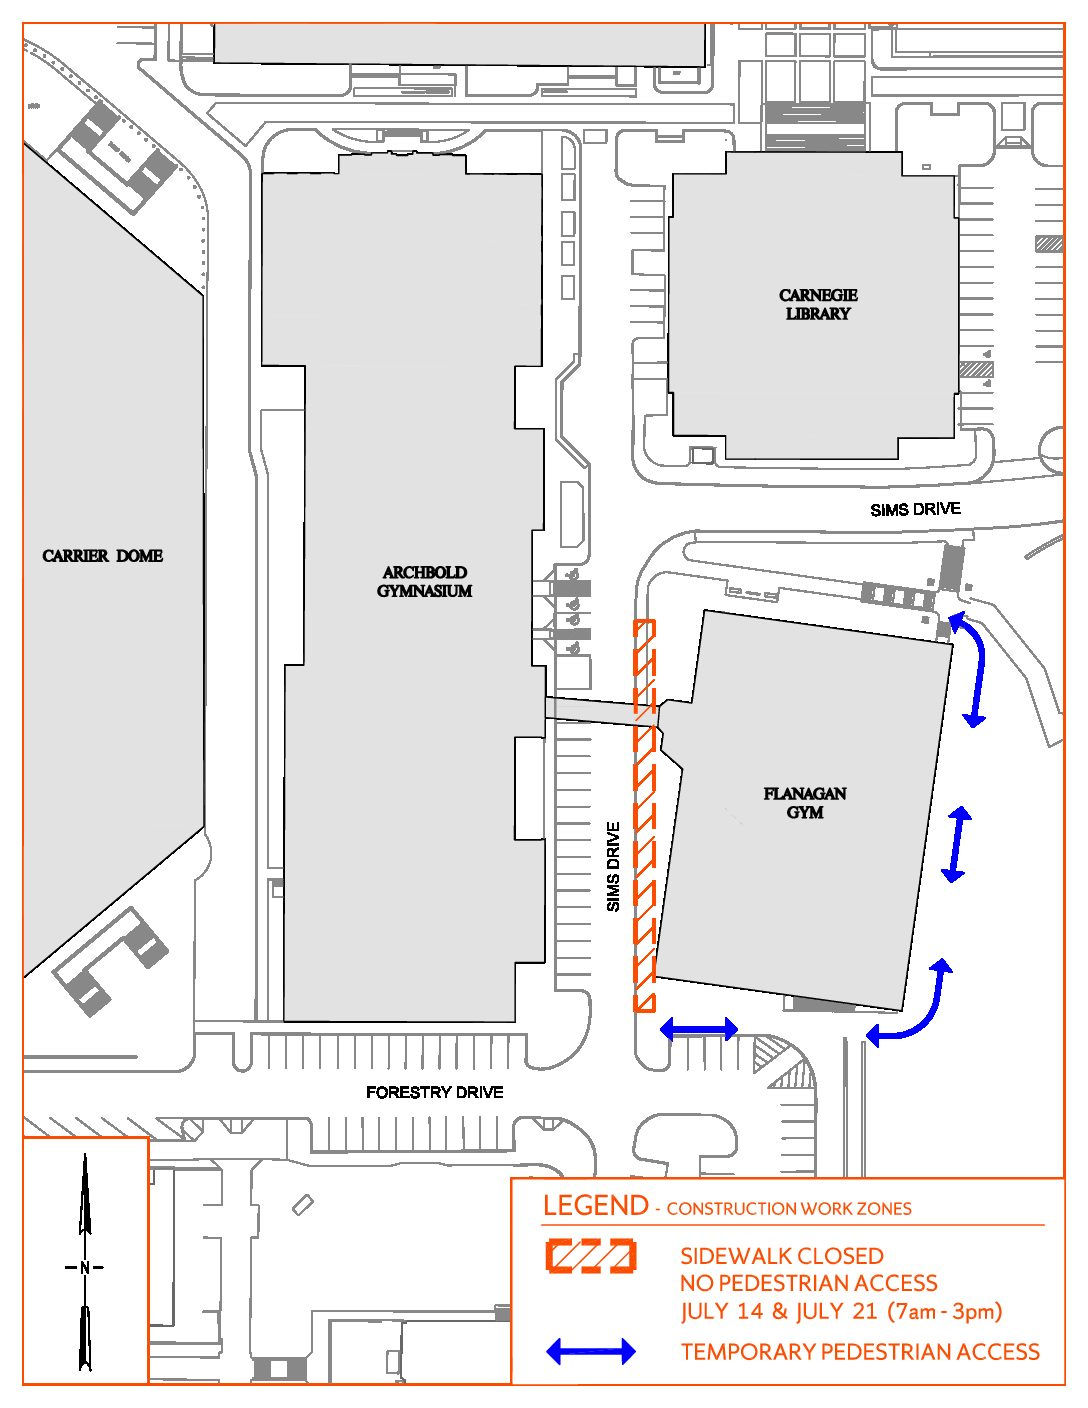 Sidewalk Closure - Flanagan Gym - Sims Drive to Forestry Drive